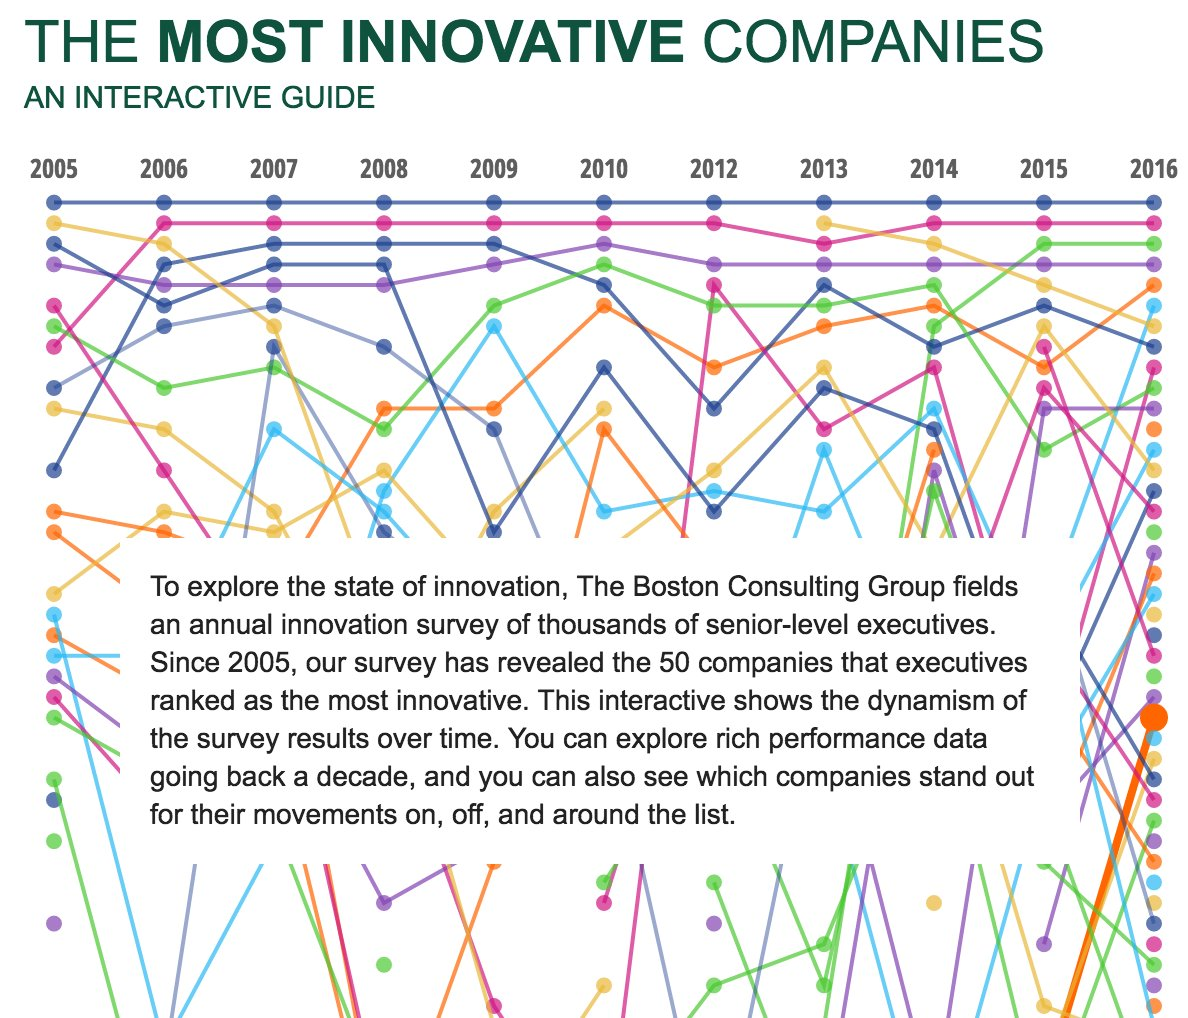 Must read @bcg report:   The Most Innovative Companies: An Interactive Guide https://t.co/dXtWsqYoJQ https://t.co/pvNiiZ5ENg